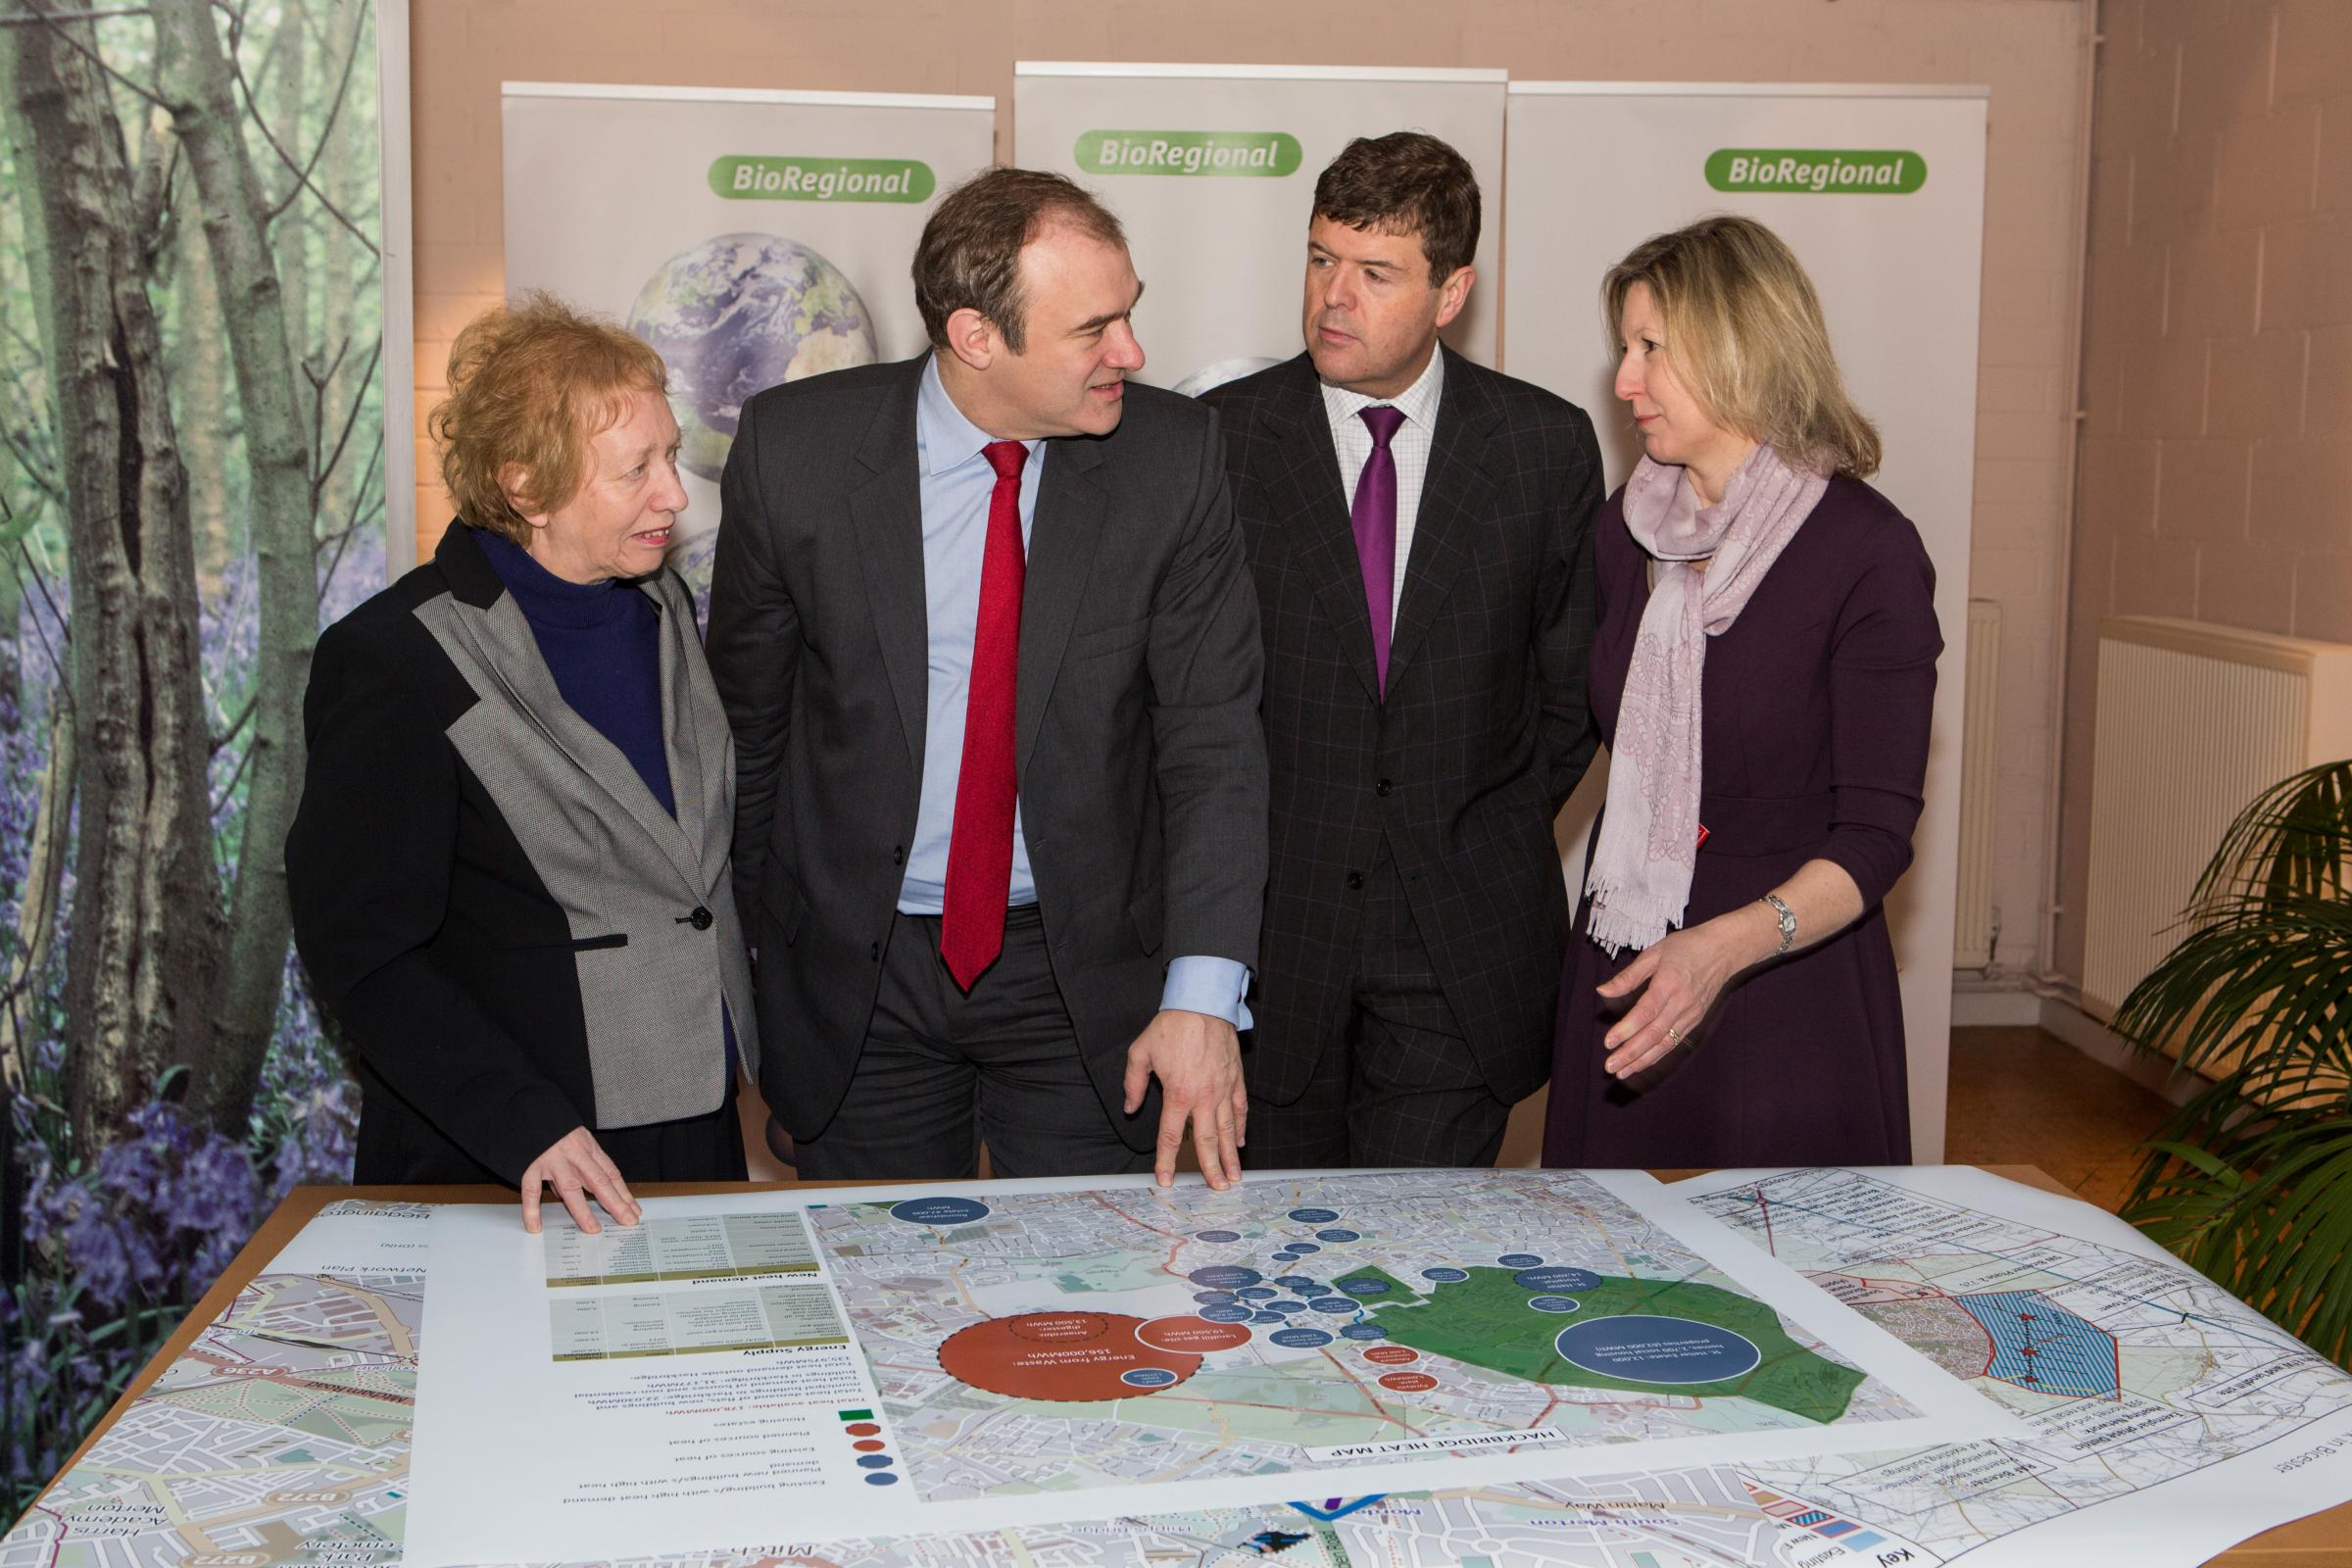 (left to right) Coun Jill Whitehead, Edward Davey MP, Paul Burstow MP and Coun Jayne McCoy discuss the plans